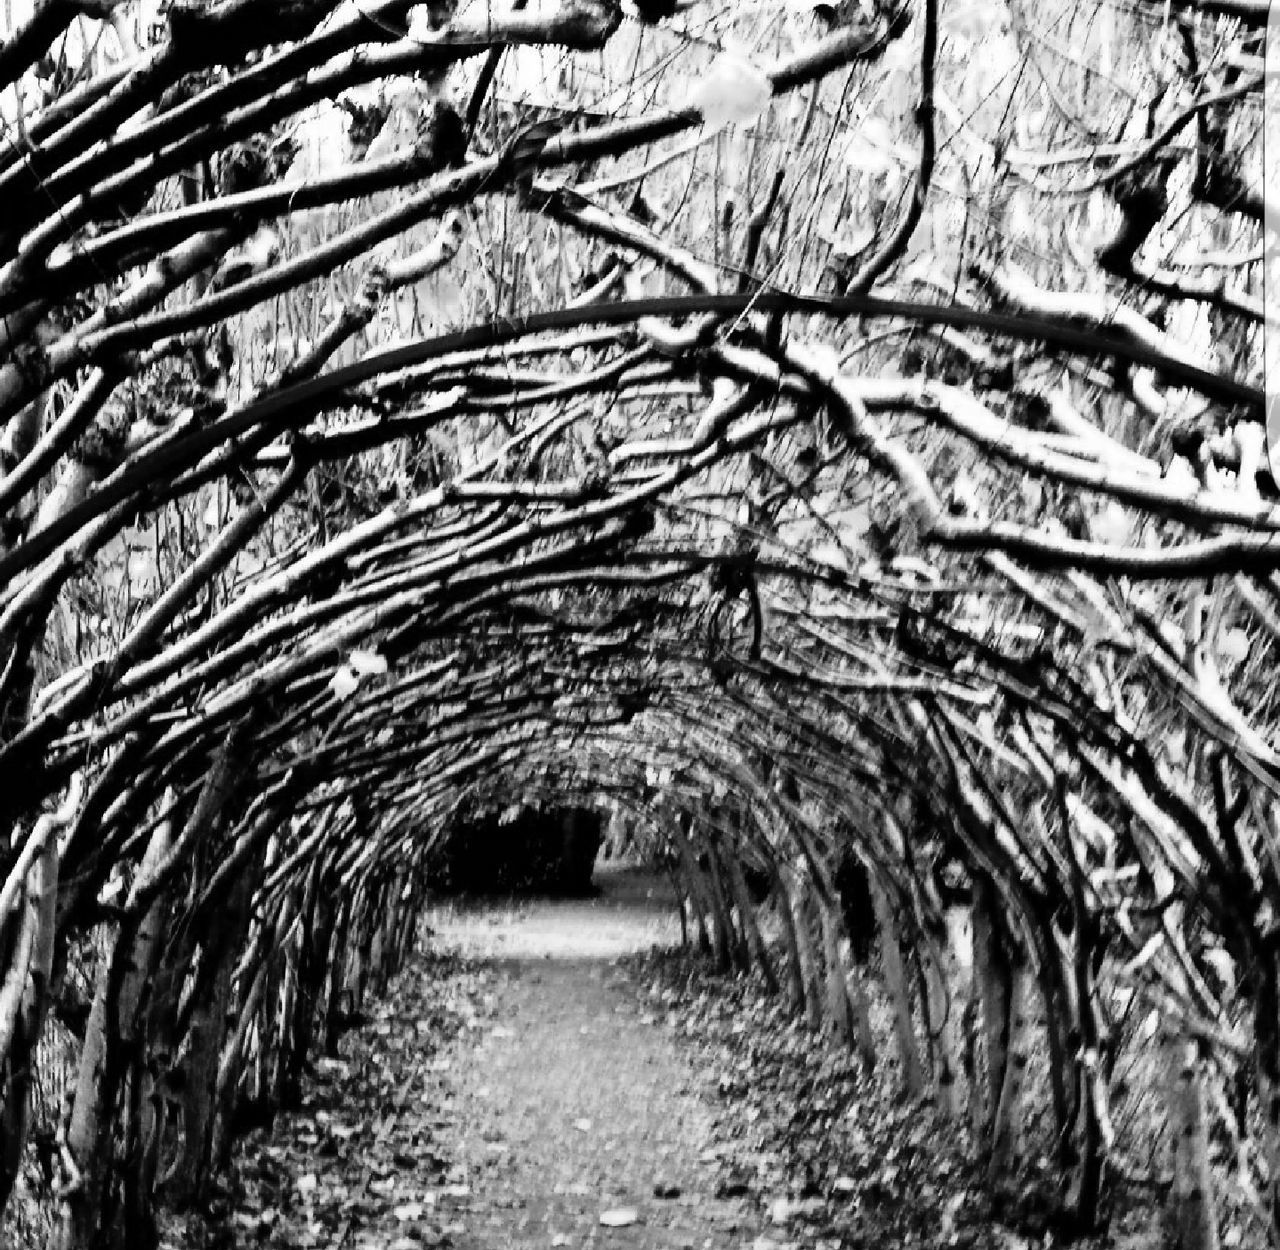 Growth No People Nature Outdoors Tree Beauty In Nature Eyem Gallery Blackandwhite Black And White Eyem Best Shots Eyeem Market Eyem Collection EyeEm Nature Lover Tree Arch Tree Branches Trees_collection Treetastic Tree Art Trees And Nature Tree Canopy  Treescape Treecollection Tree Porn Tree Tunnel Tree Tunnel, Albizia Tunnel, Nanawale, Pahoa